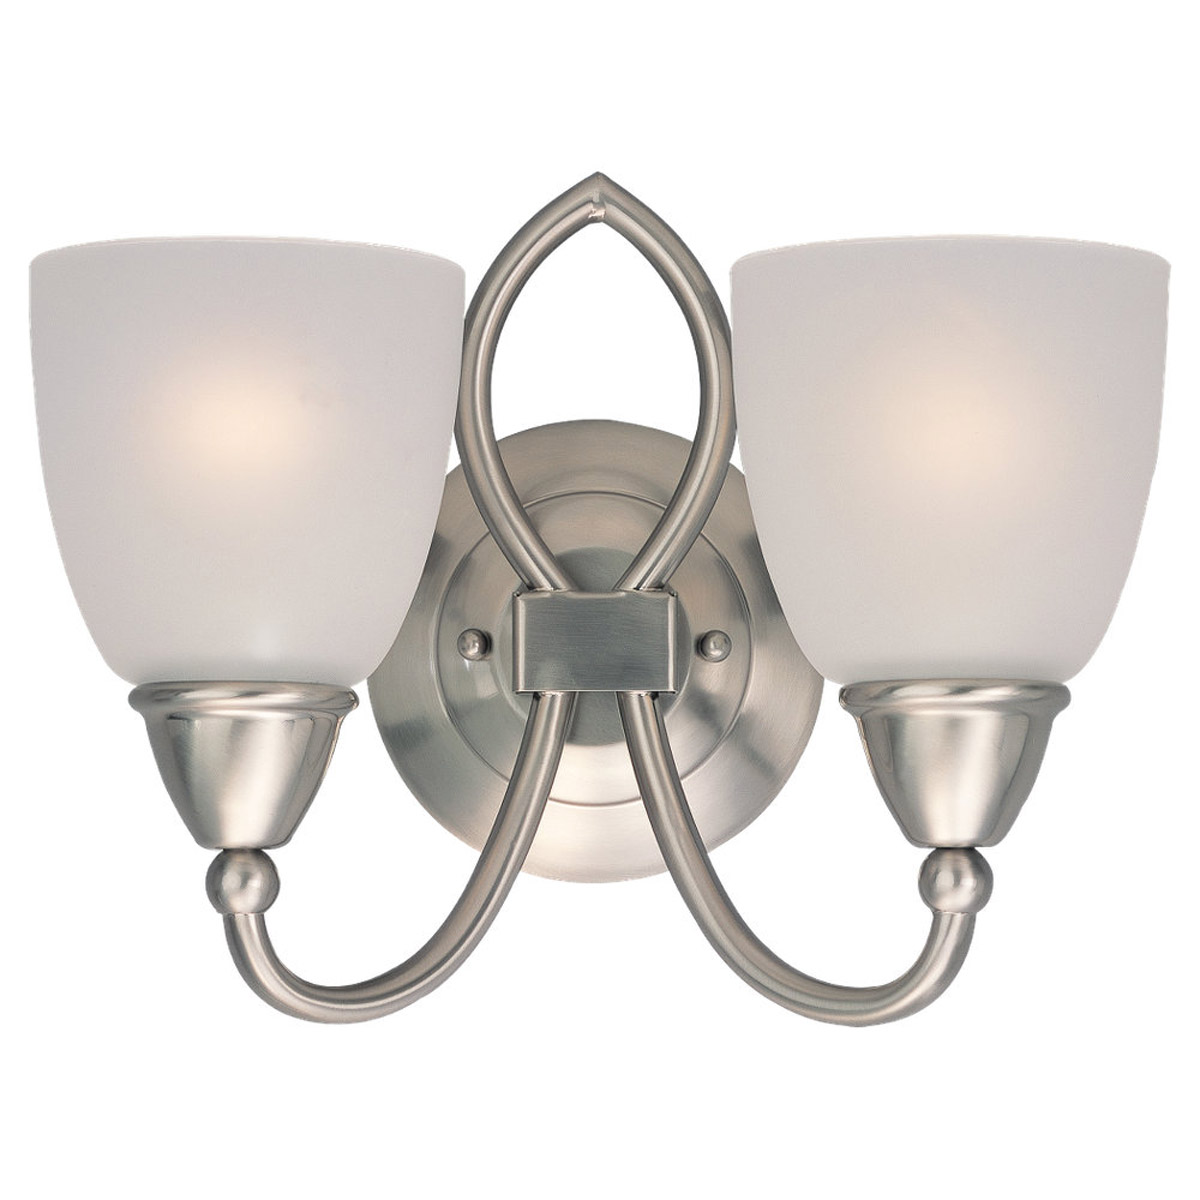 Sea Gull Lighting Pemberton 2 Light Bath Vanity in Brushed Nickel 40074-962 photo